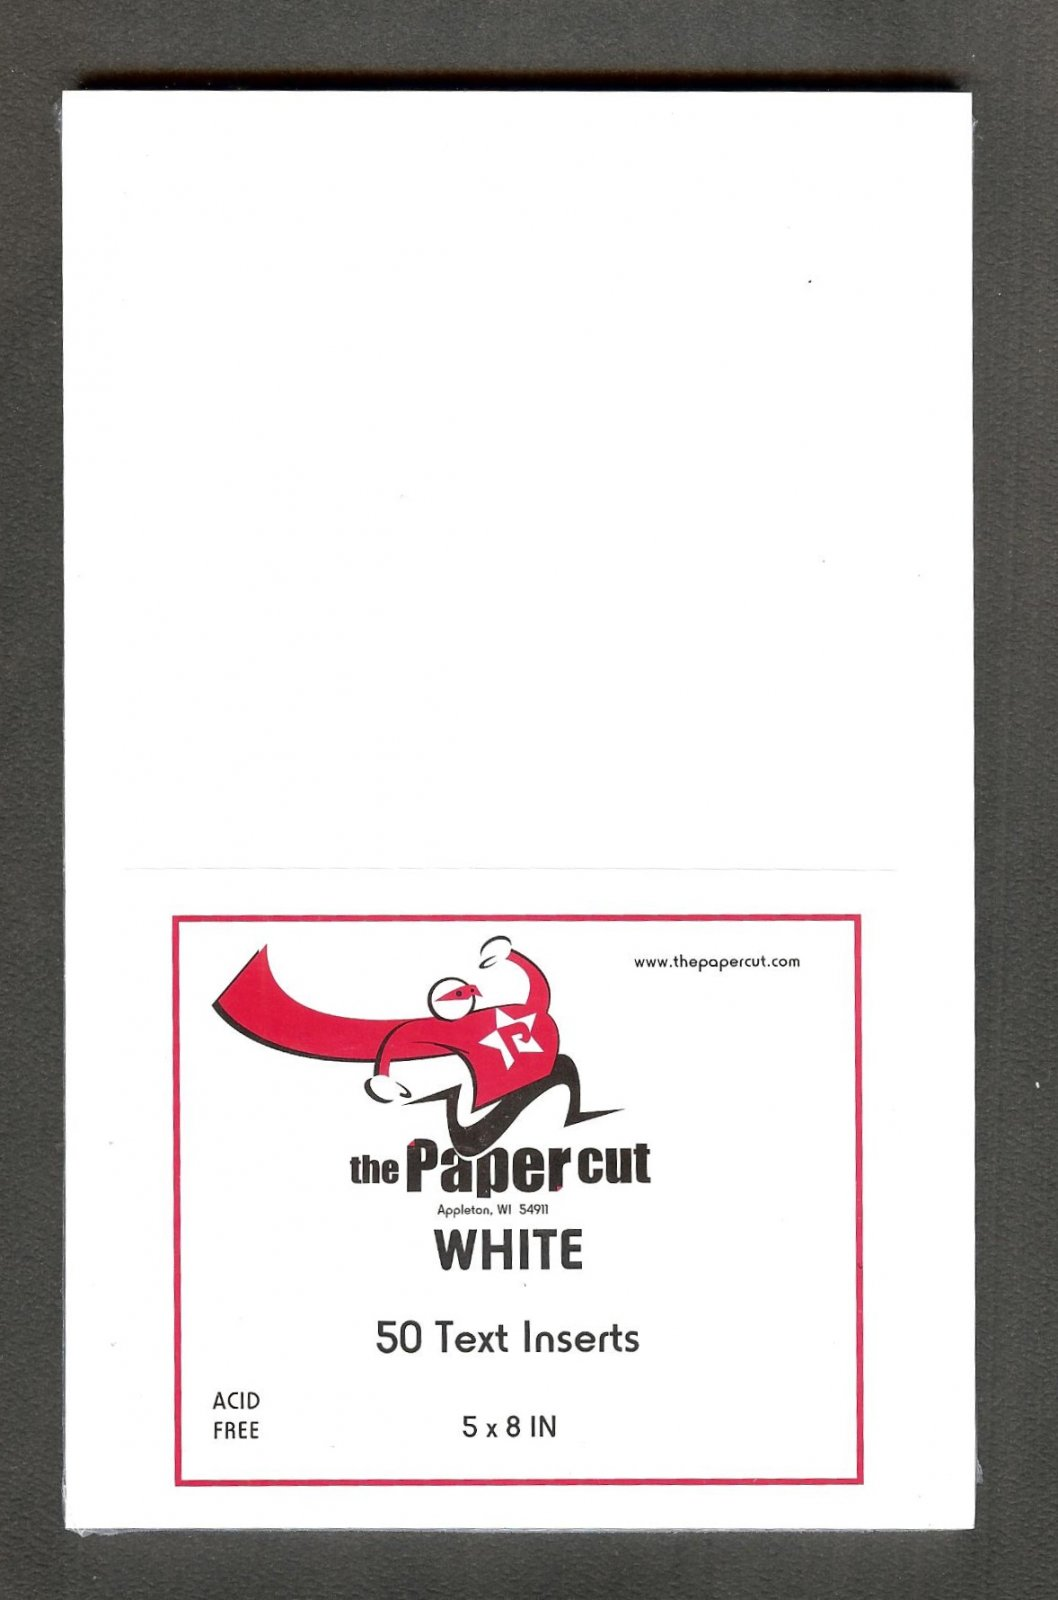 The Paper Cut - Text Inserts, White